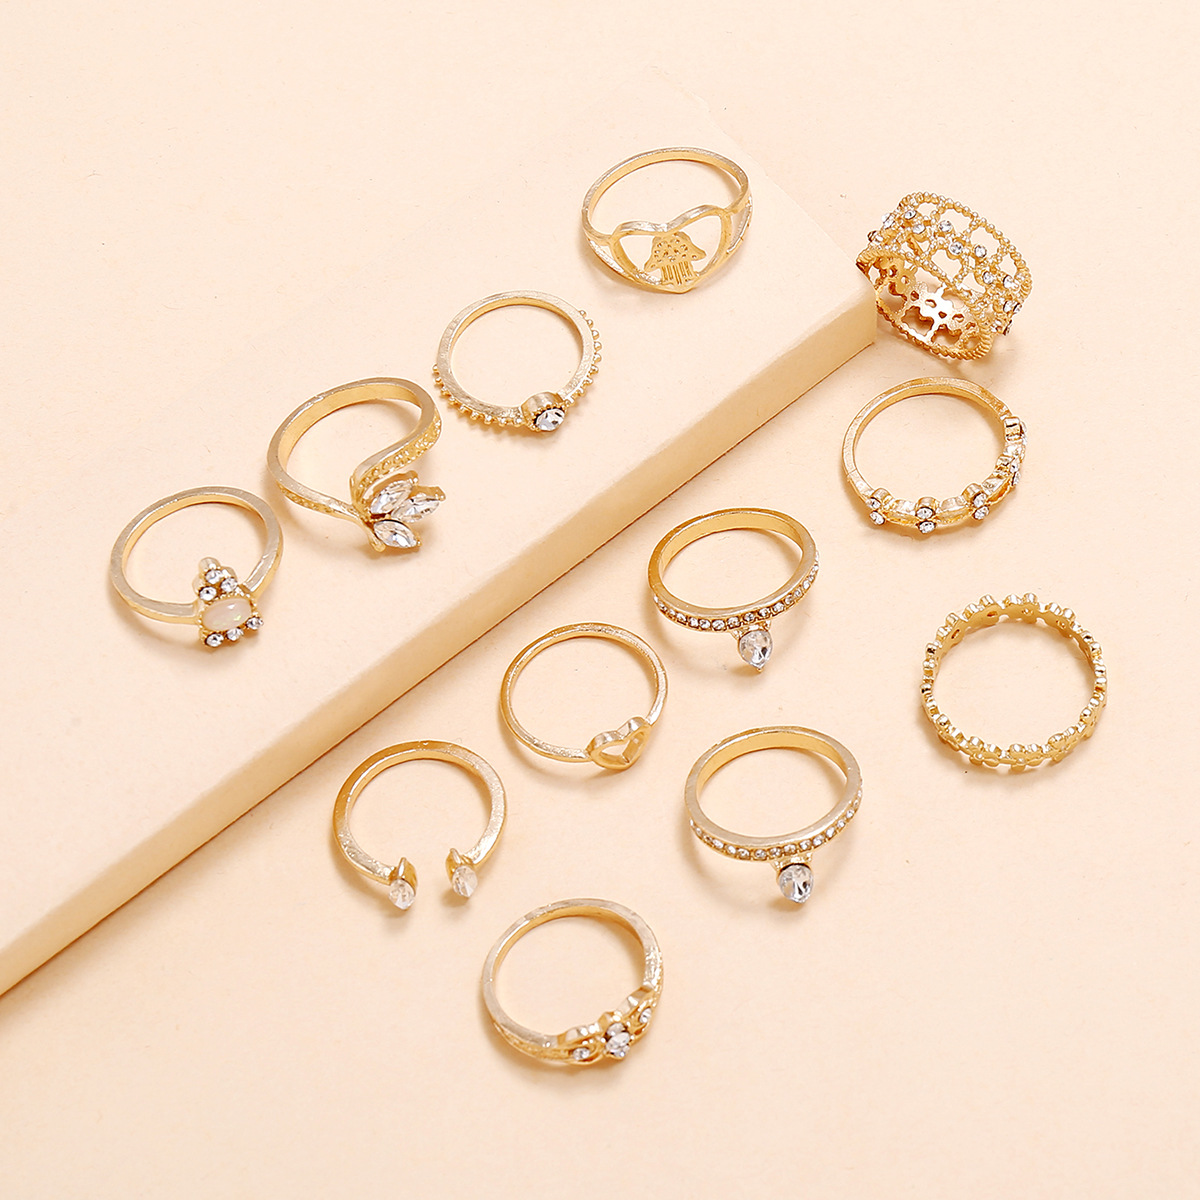 New Fashion Flower Leaf Love Palm Fatima Hand Diamond Hollow 12 Piece Ring Set NHPV205114